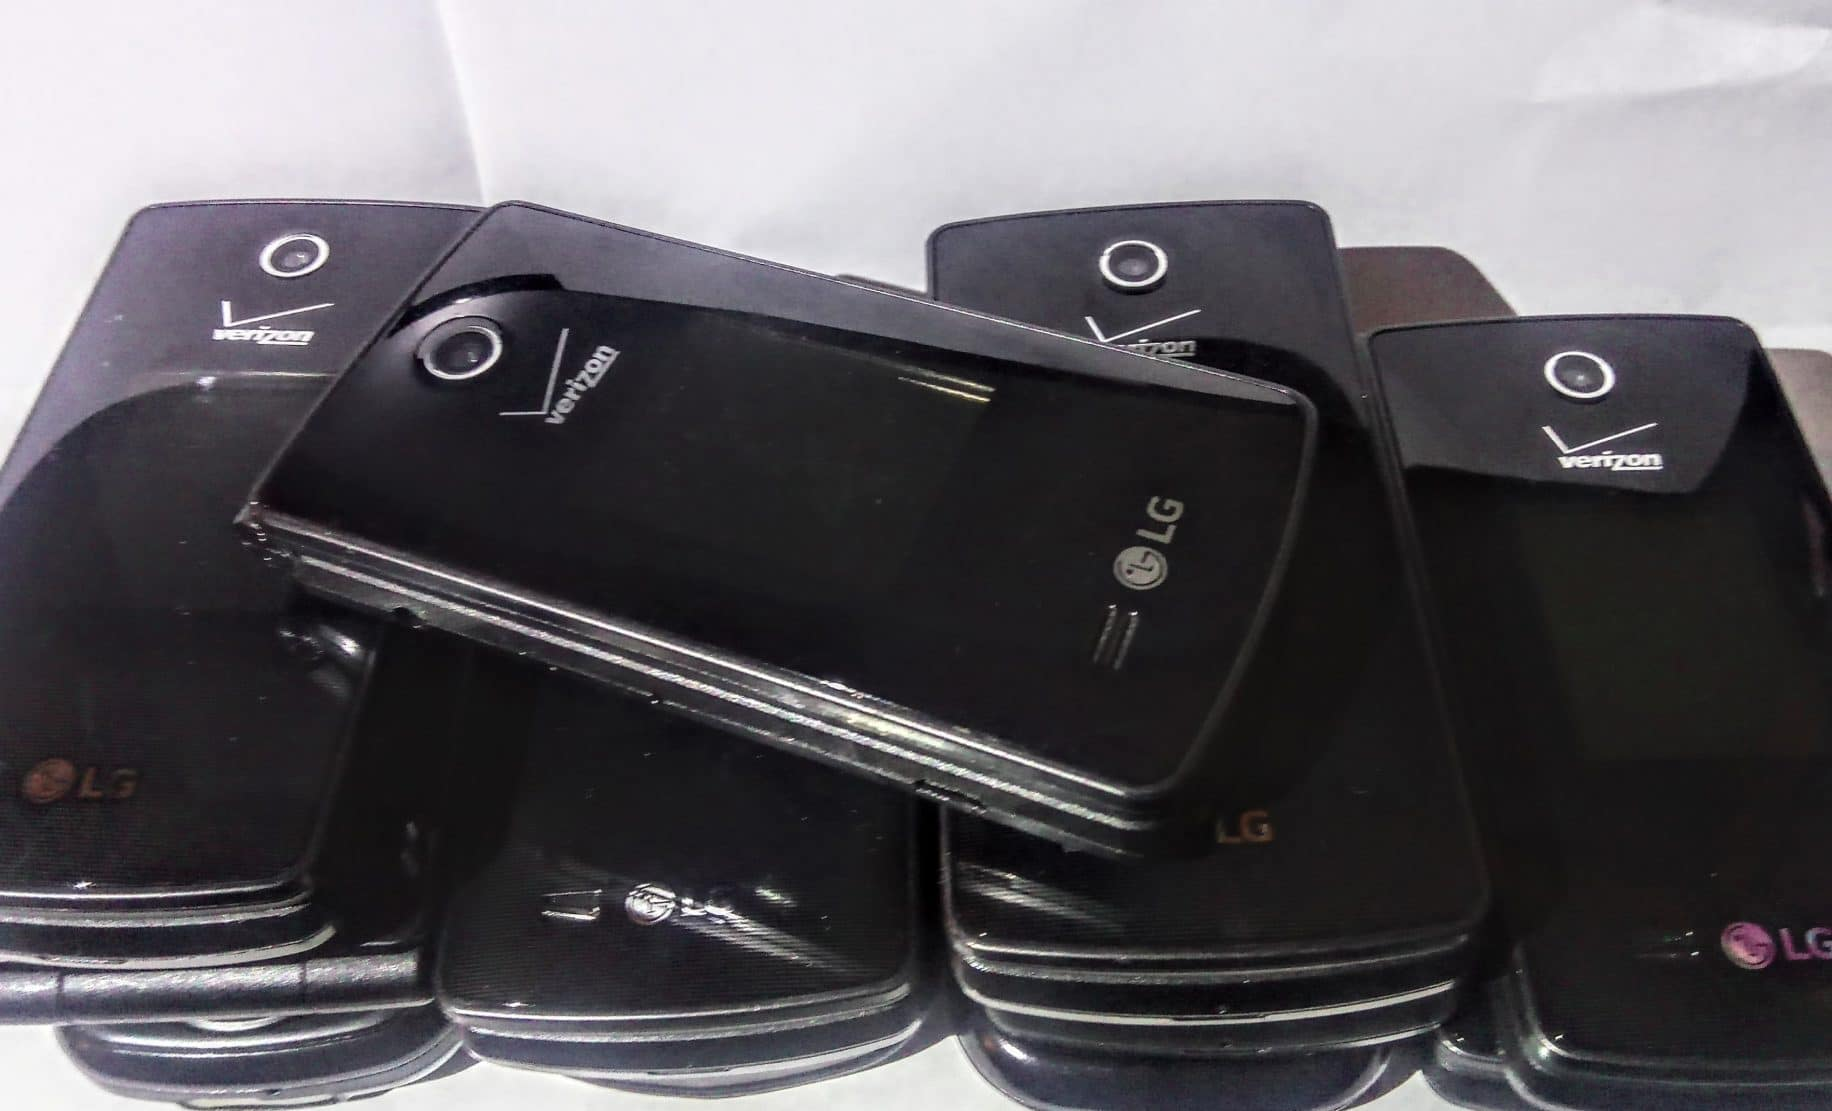 phones on table